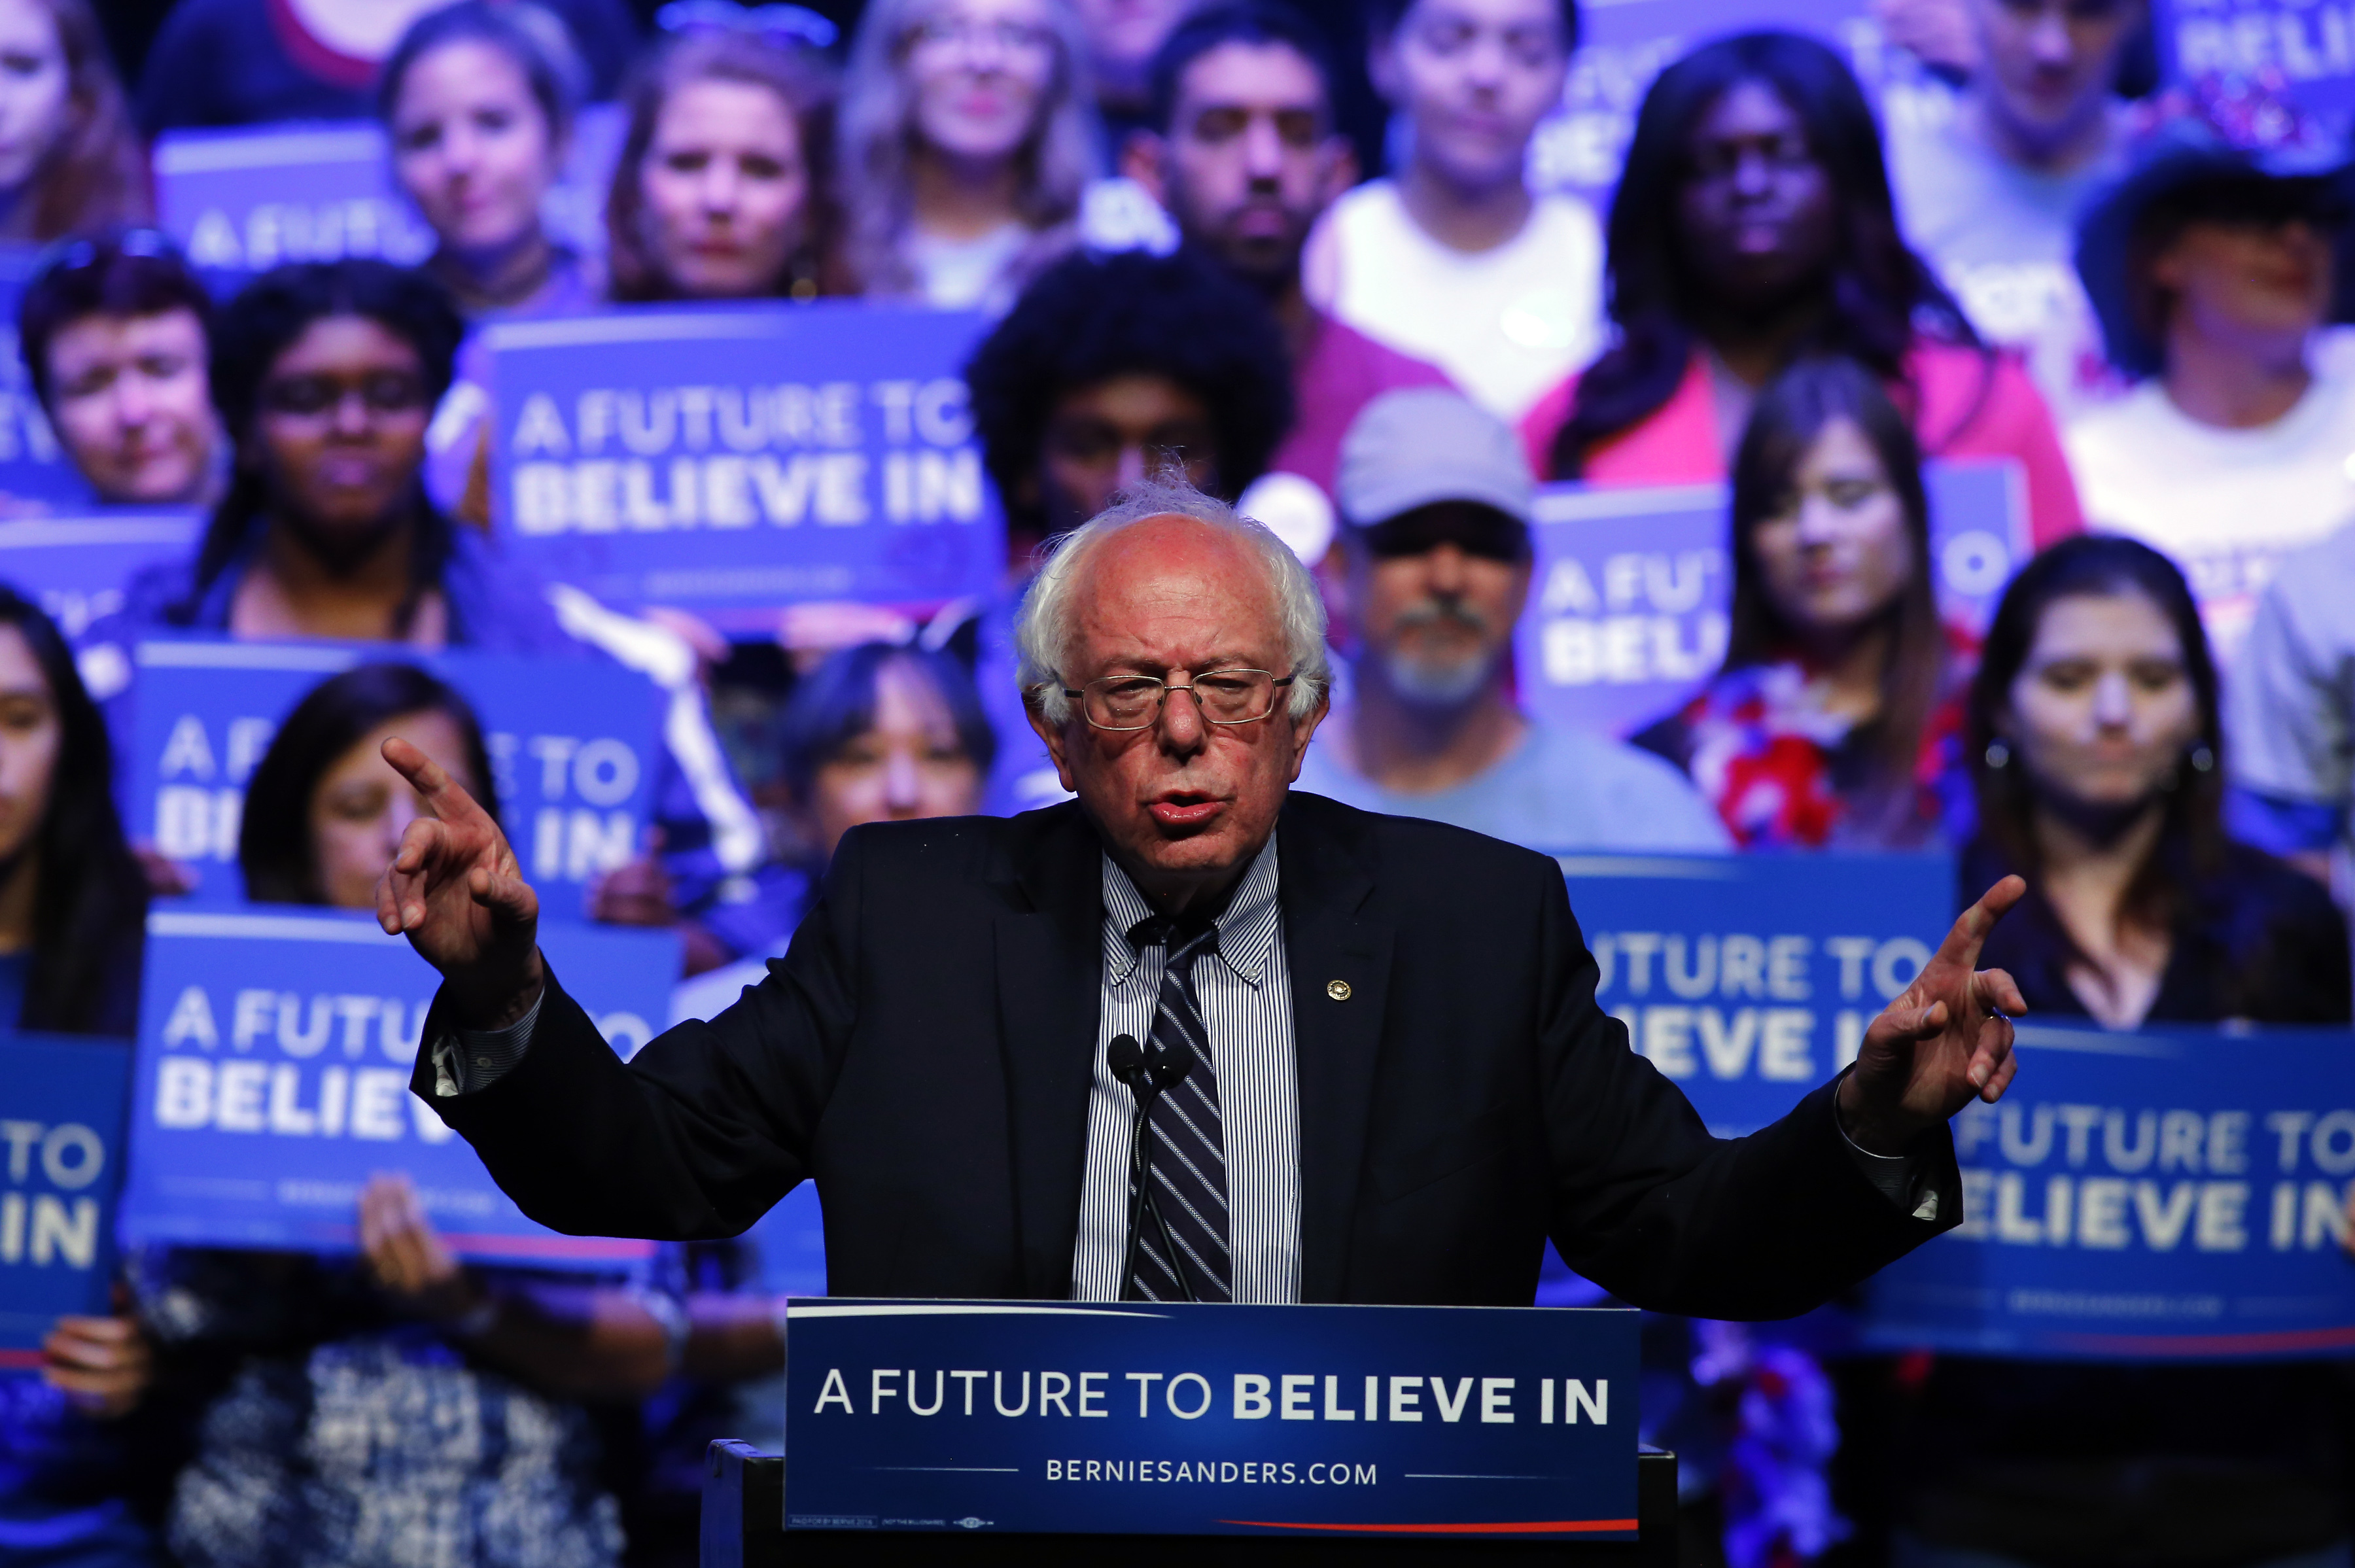 UNFAZED. Vermont Senator and Democratic presidential candidate Bernie Sanders speaks at a campaign rally in Grand Prairie, Texas, USA, February 27, 2016. Photo by Mike Stone/EPA